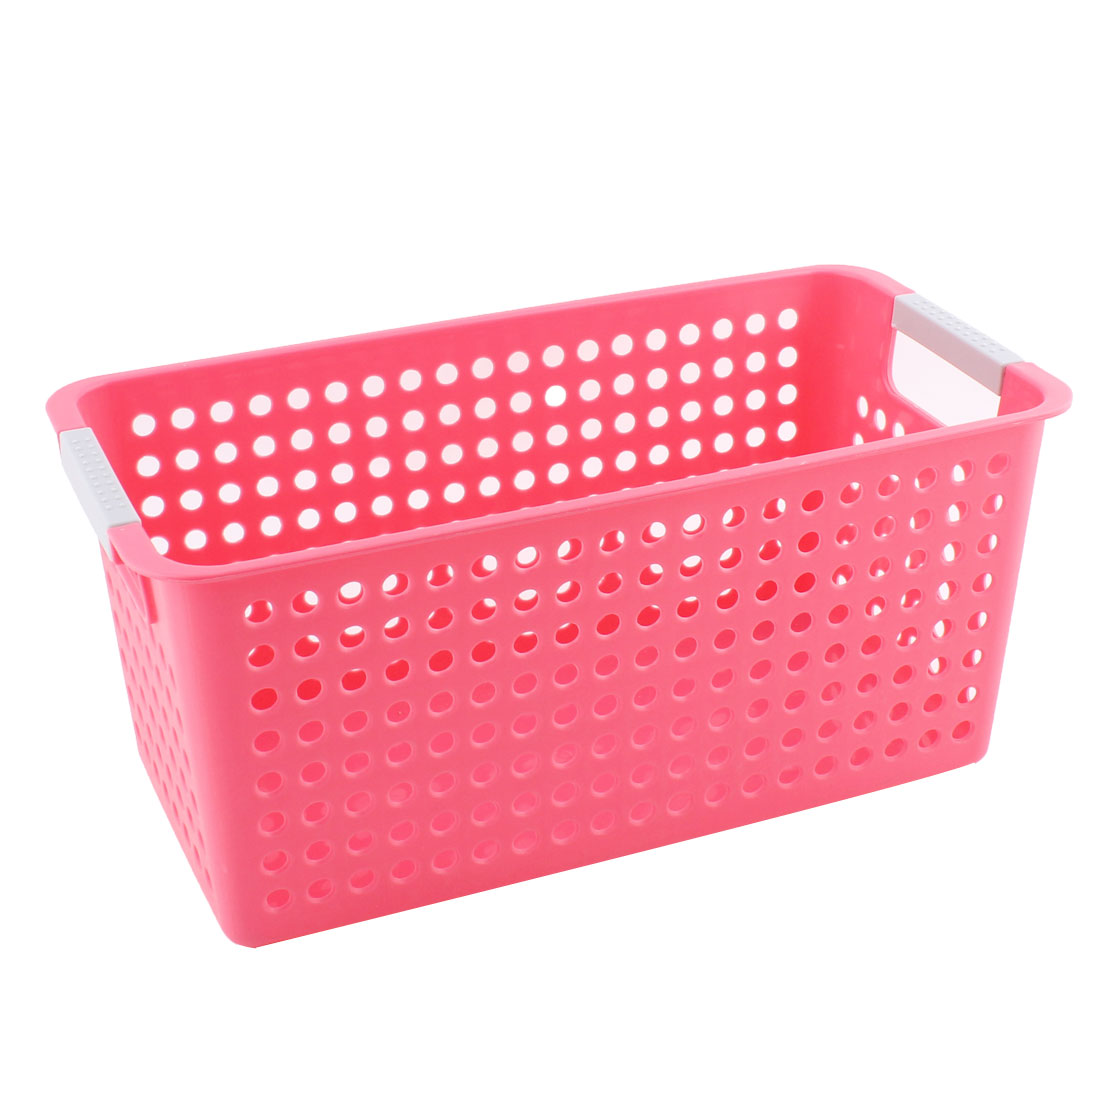 Office School Family Plastic Hollow Out Design Storage Basket Container Green